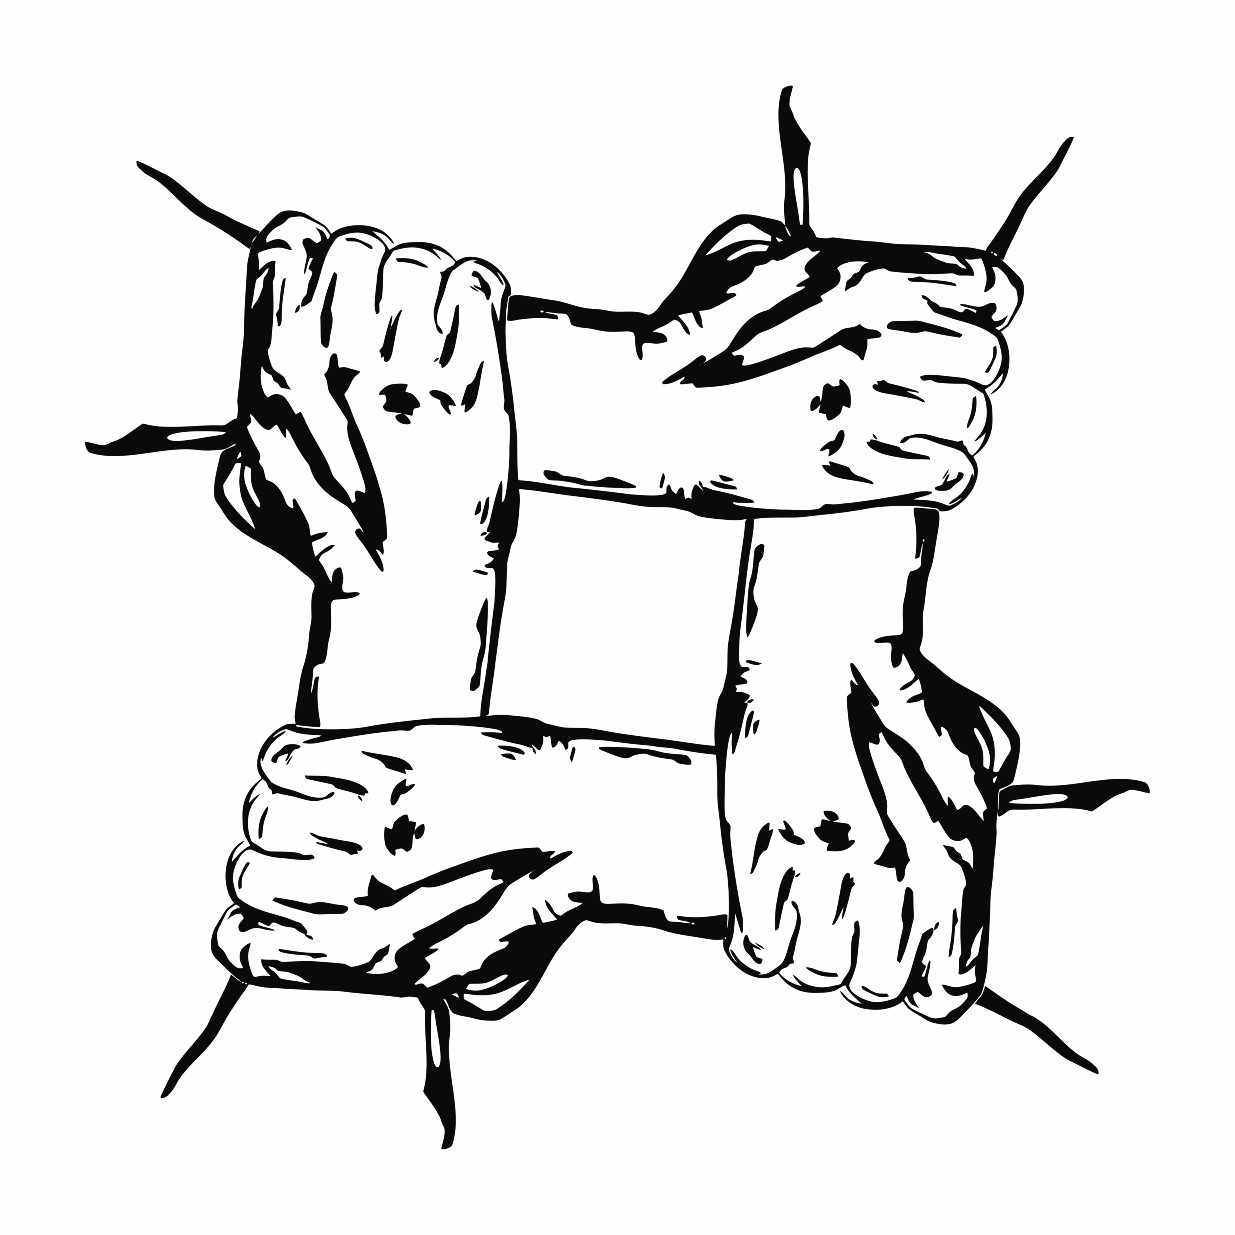 1235x1235 Hands Holding Each Other In Unity Printable Image Illustration